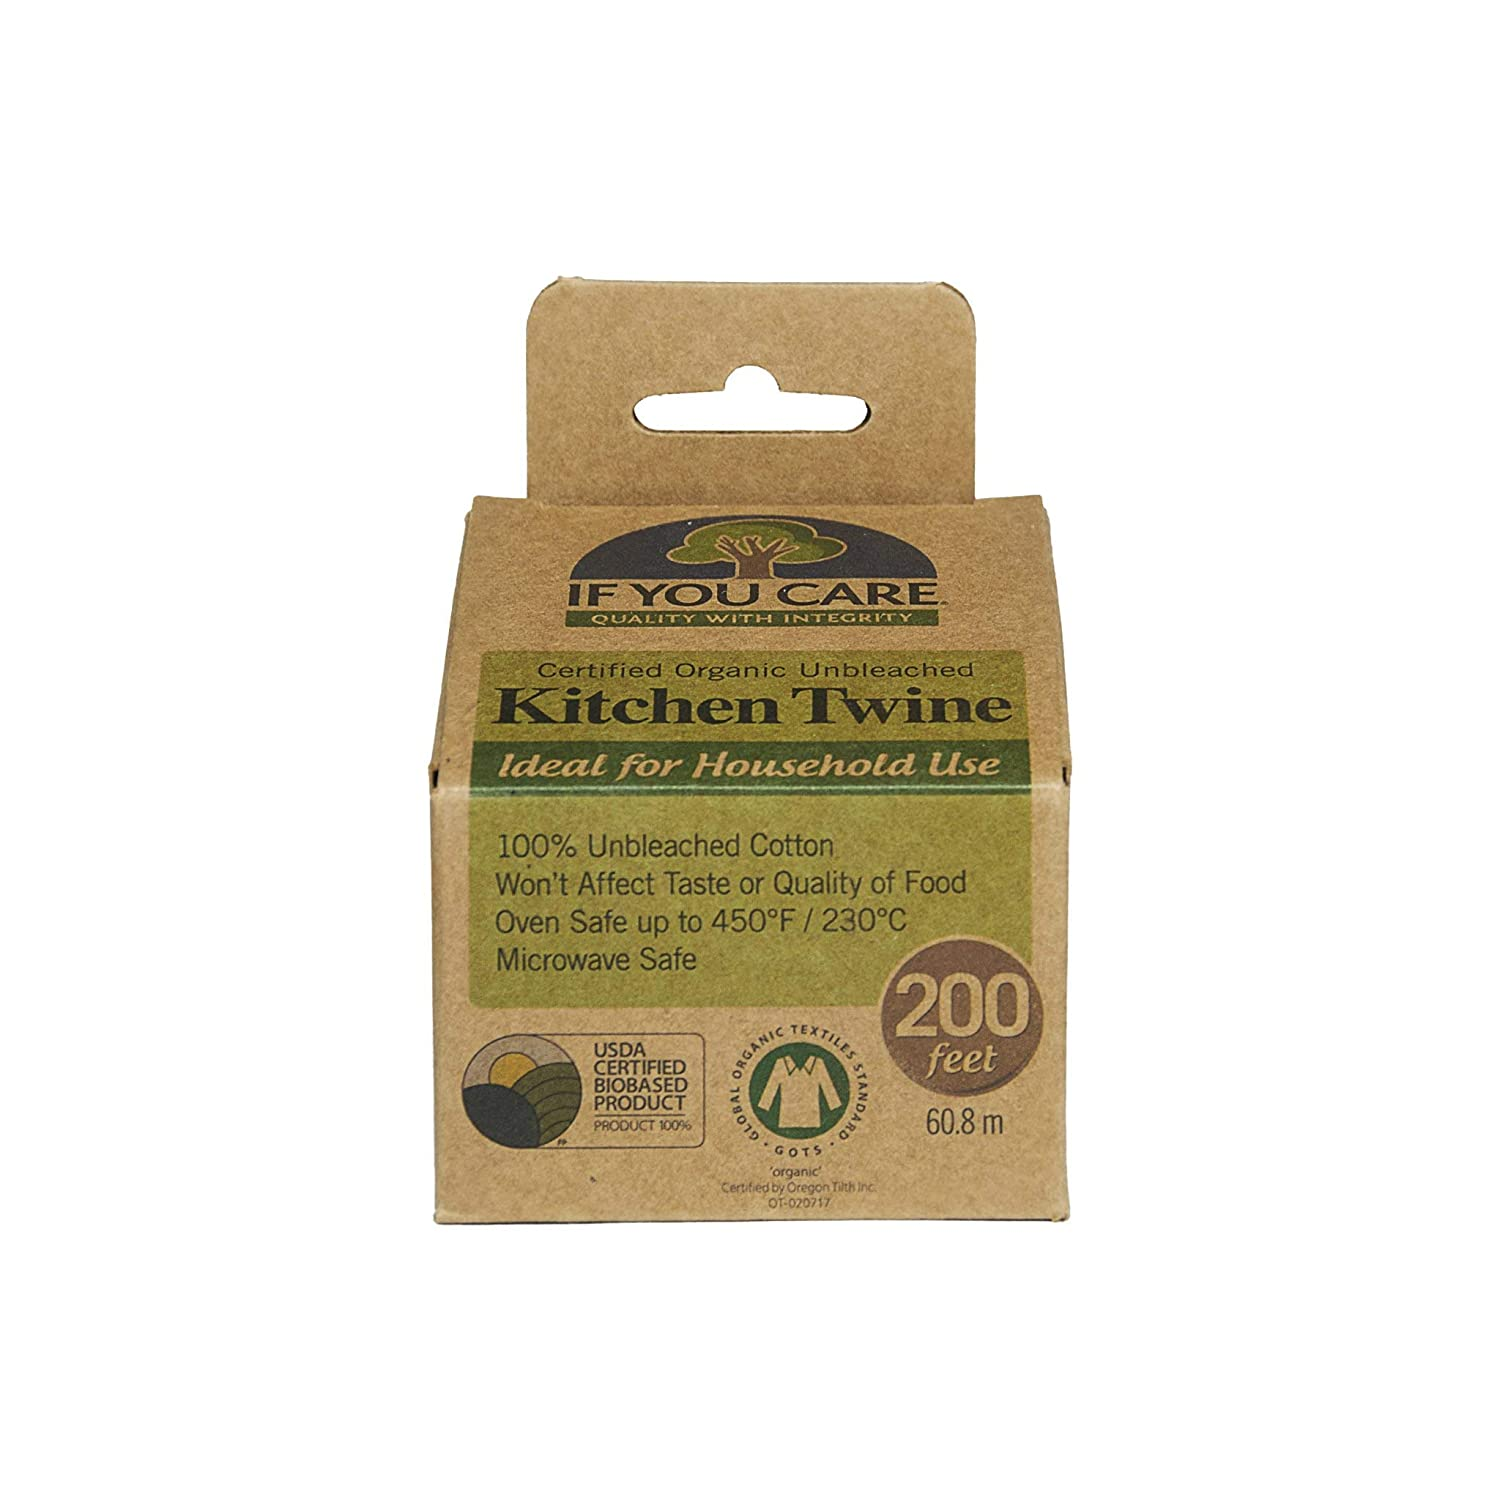 If You Care J25031 100% Natural Cooking Twine, 200', Unbleached